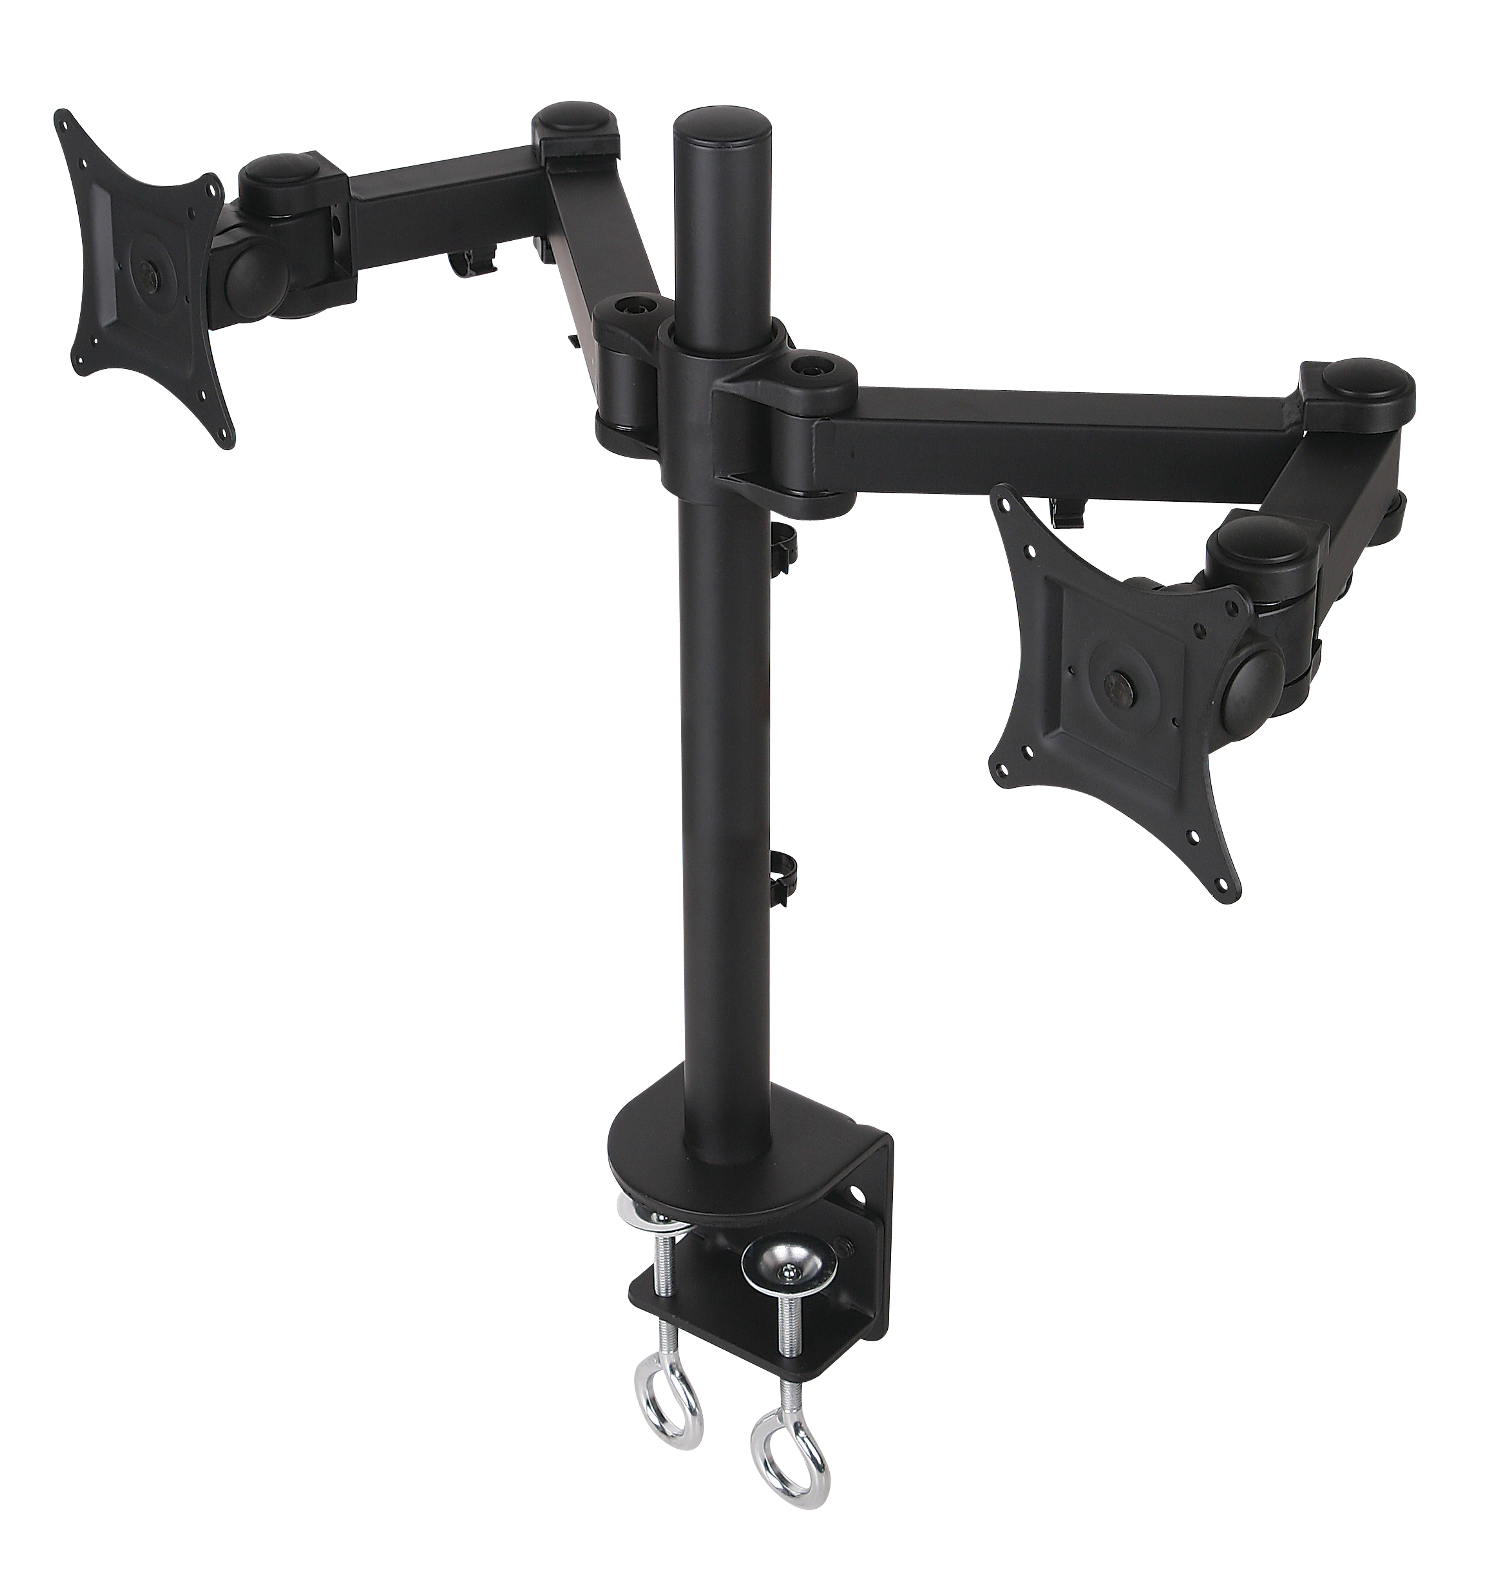 Fuji Labs vivo Dual Monitor Desk Mount Stand Heavy Duty Fully Ad